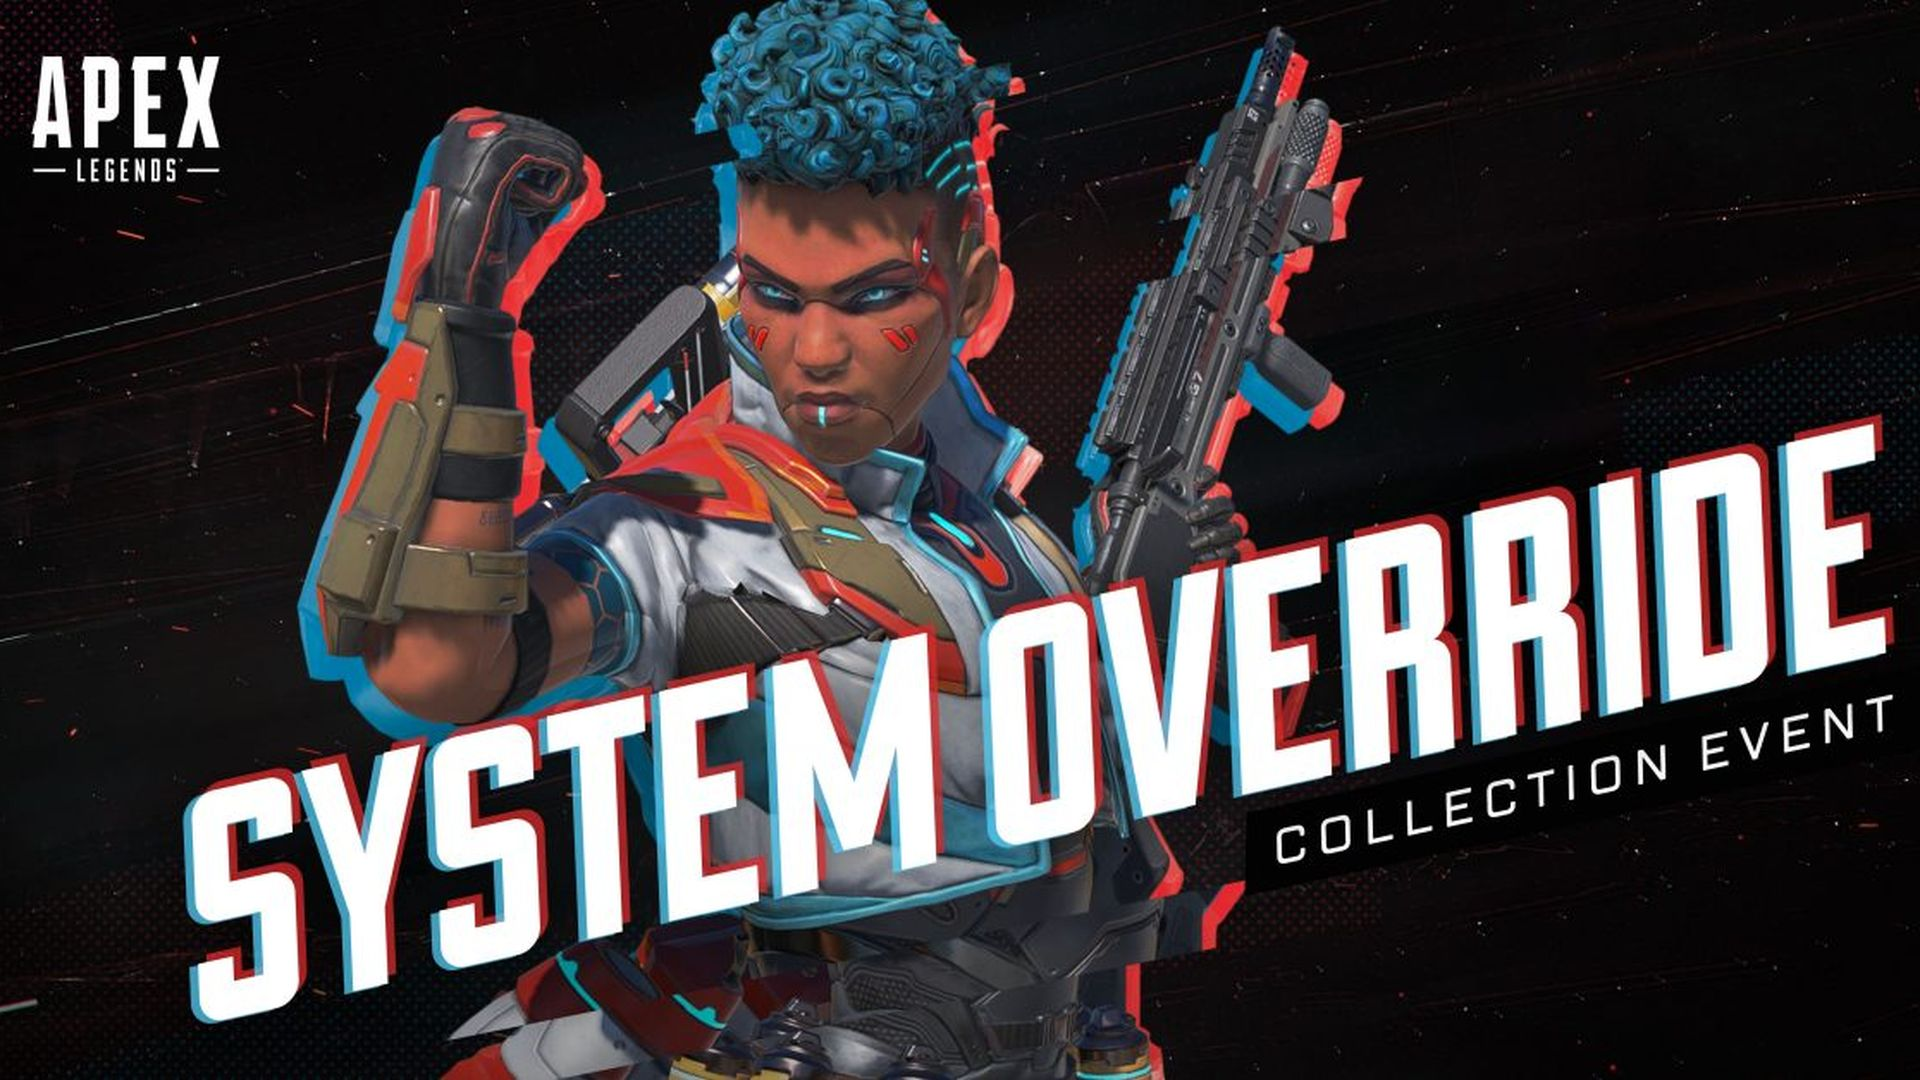 """Apex Legends"" Reveals System Override Collection Event"